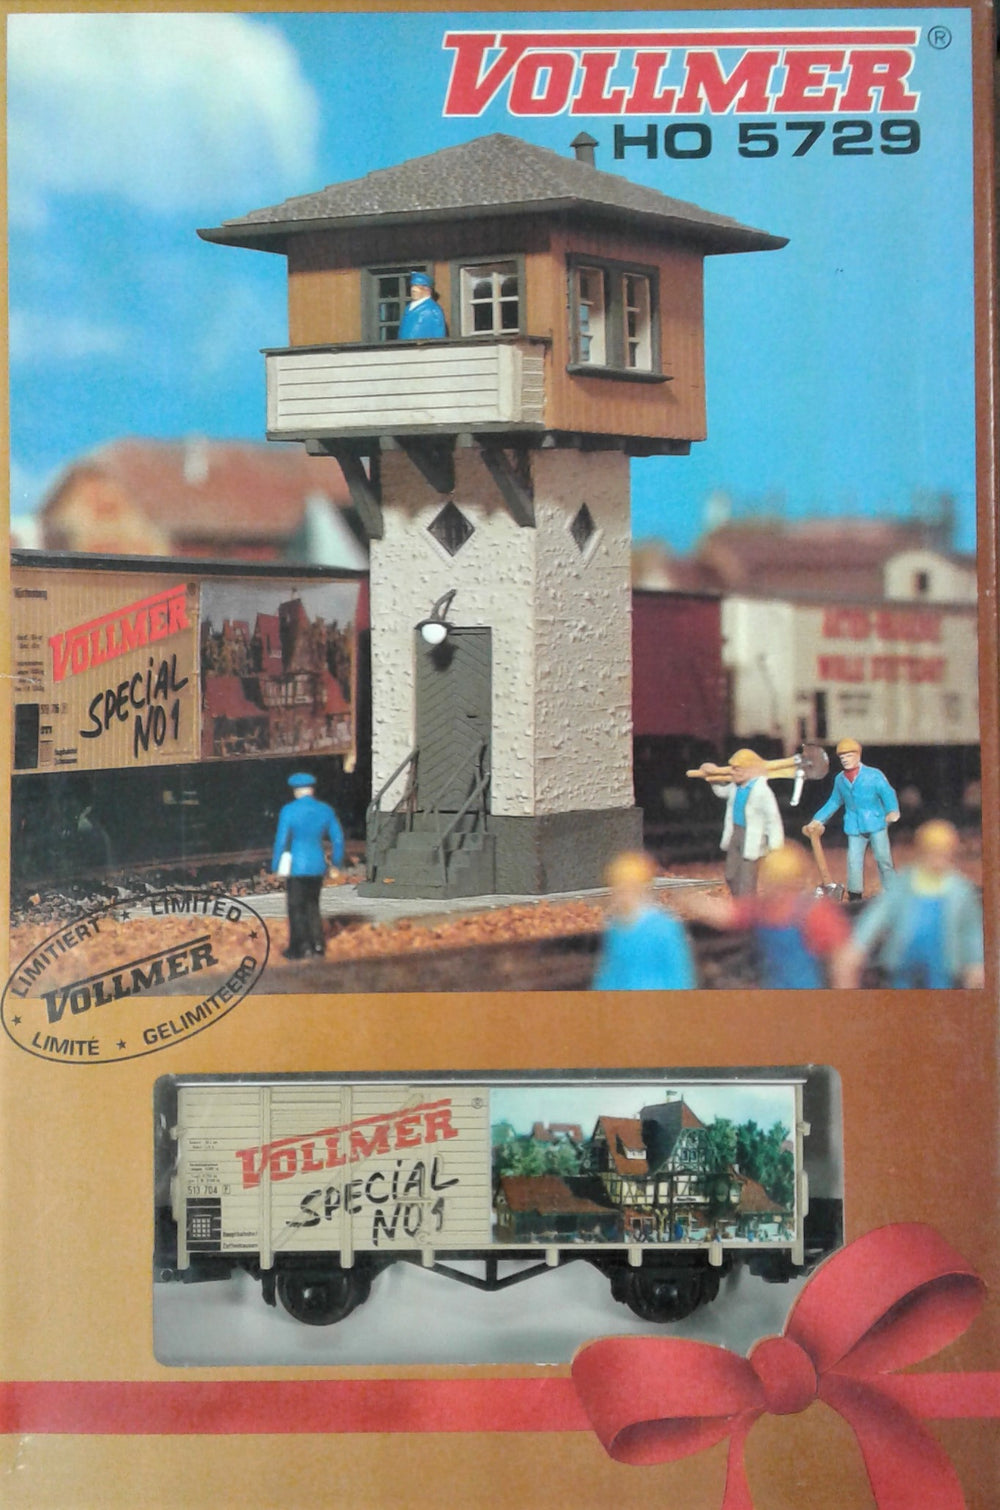 VOLLMER # 5729 - Special - Signal Box with Vollmer Wagon - HO Scale Kit